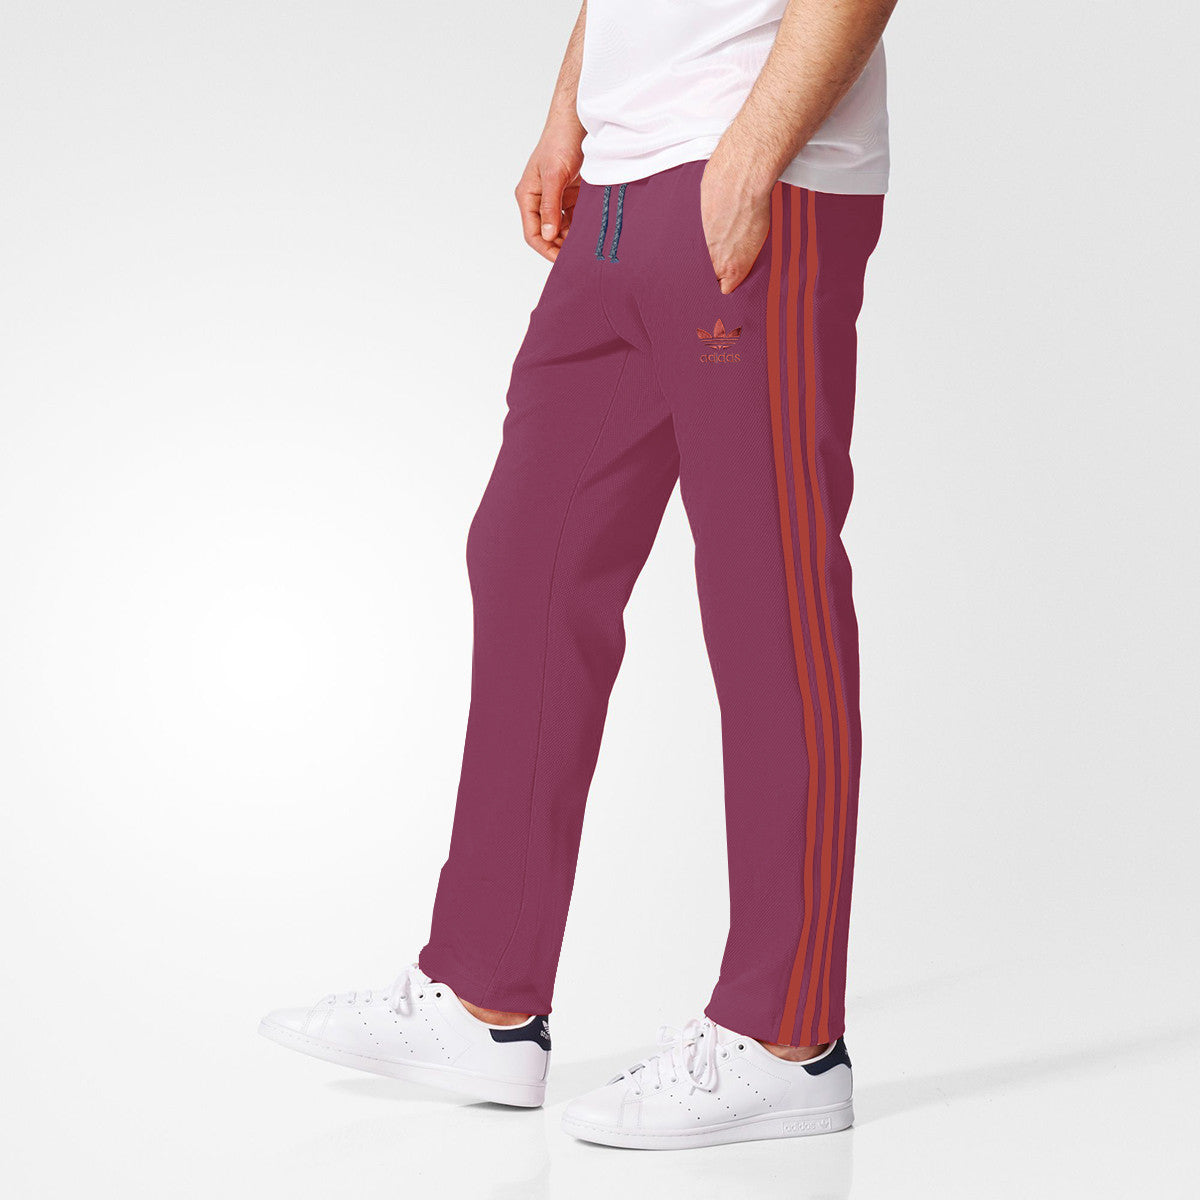 Adidas Cotton Trouser For Men-Light Berry With Corel Red Stripes-BE3001